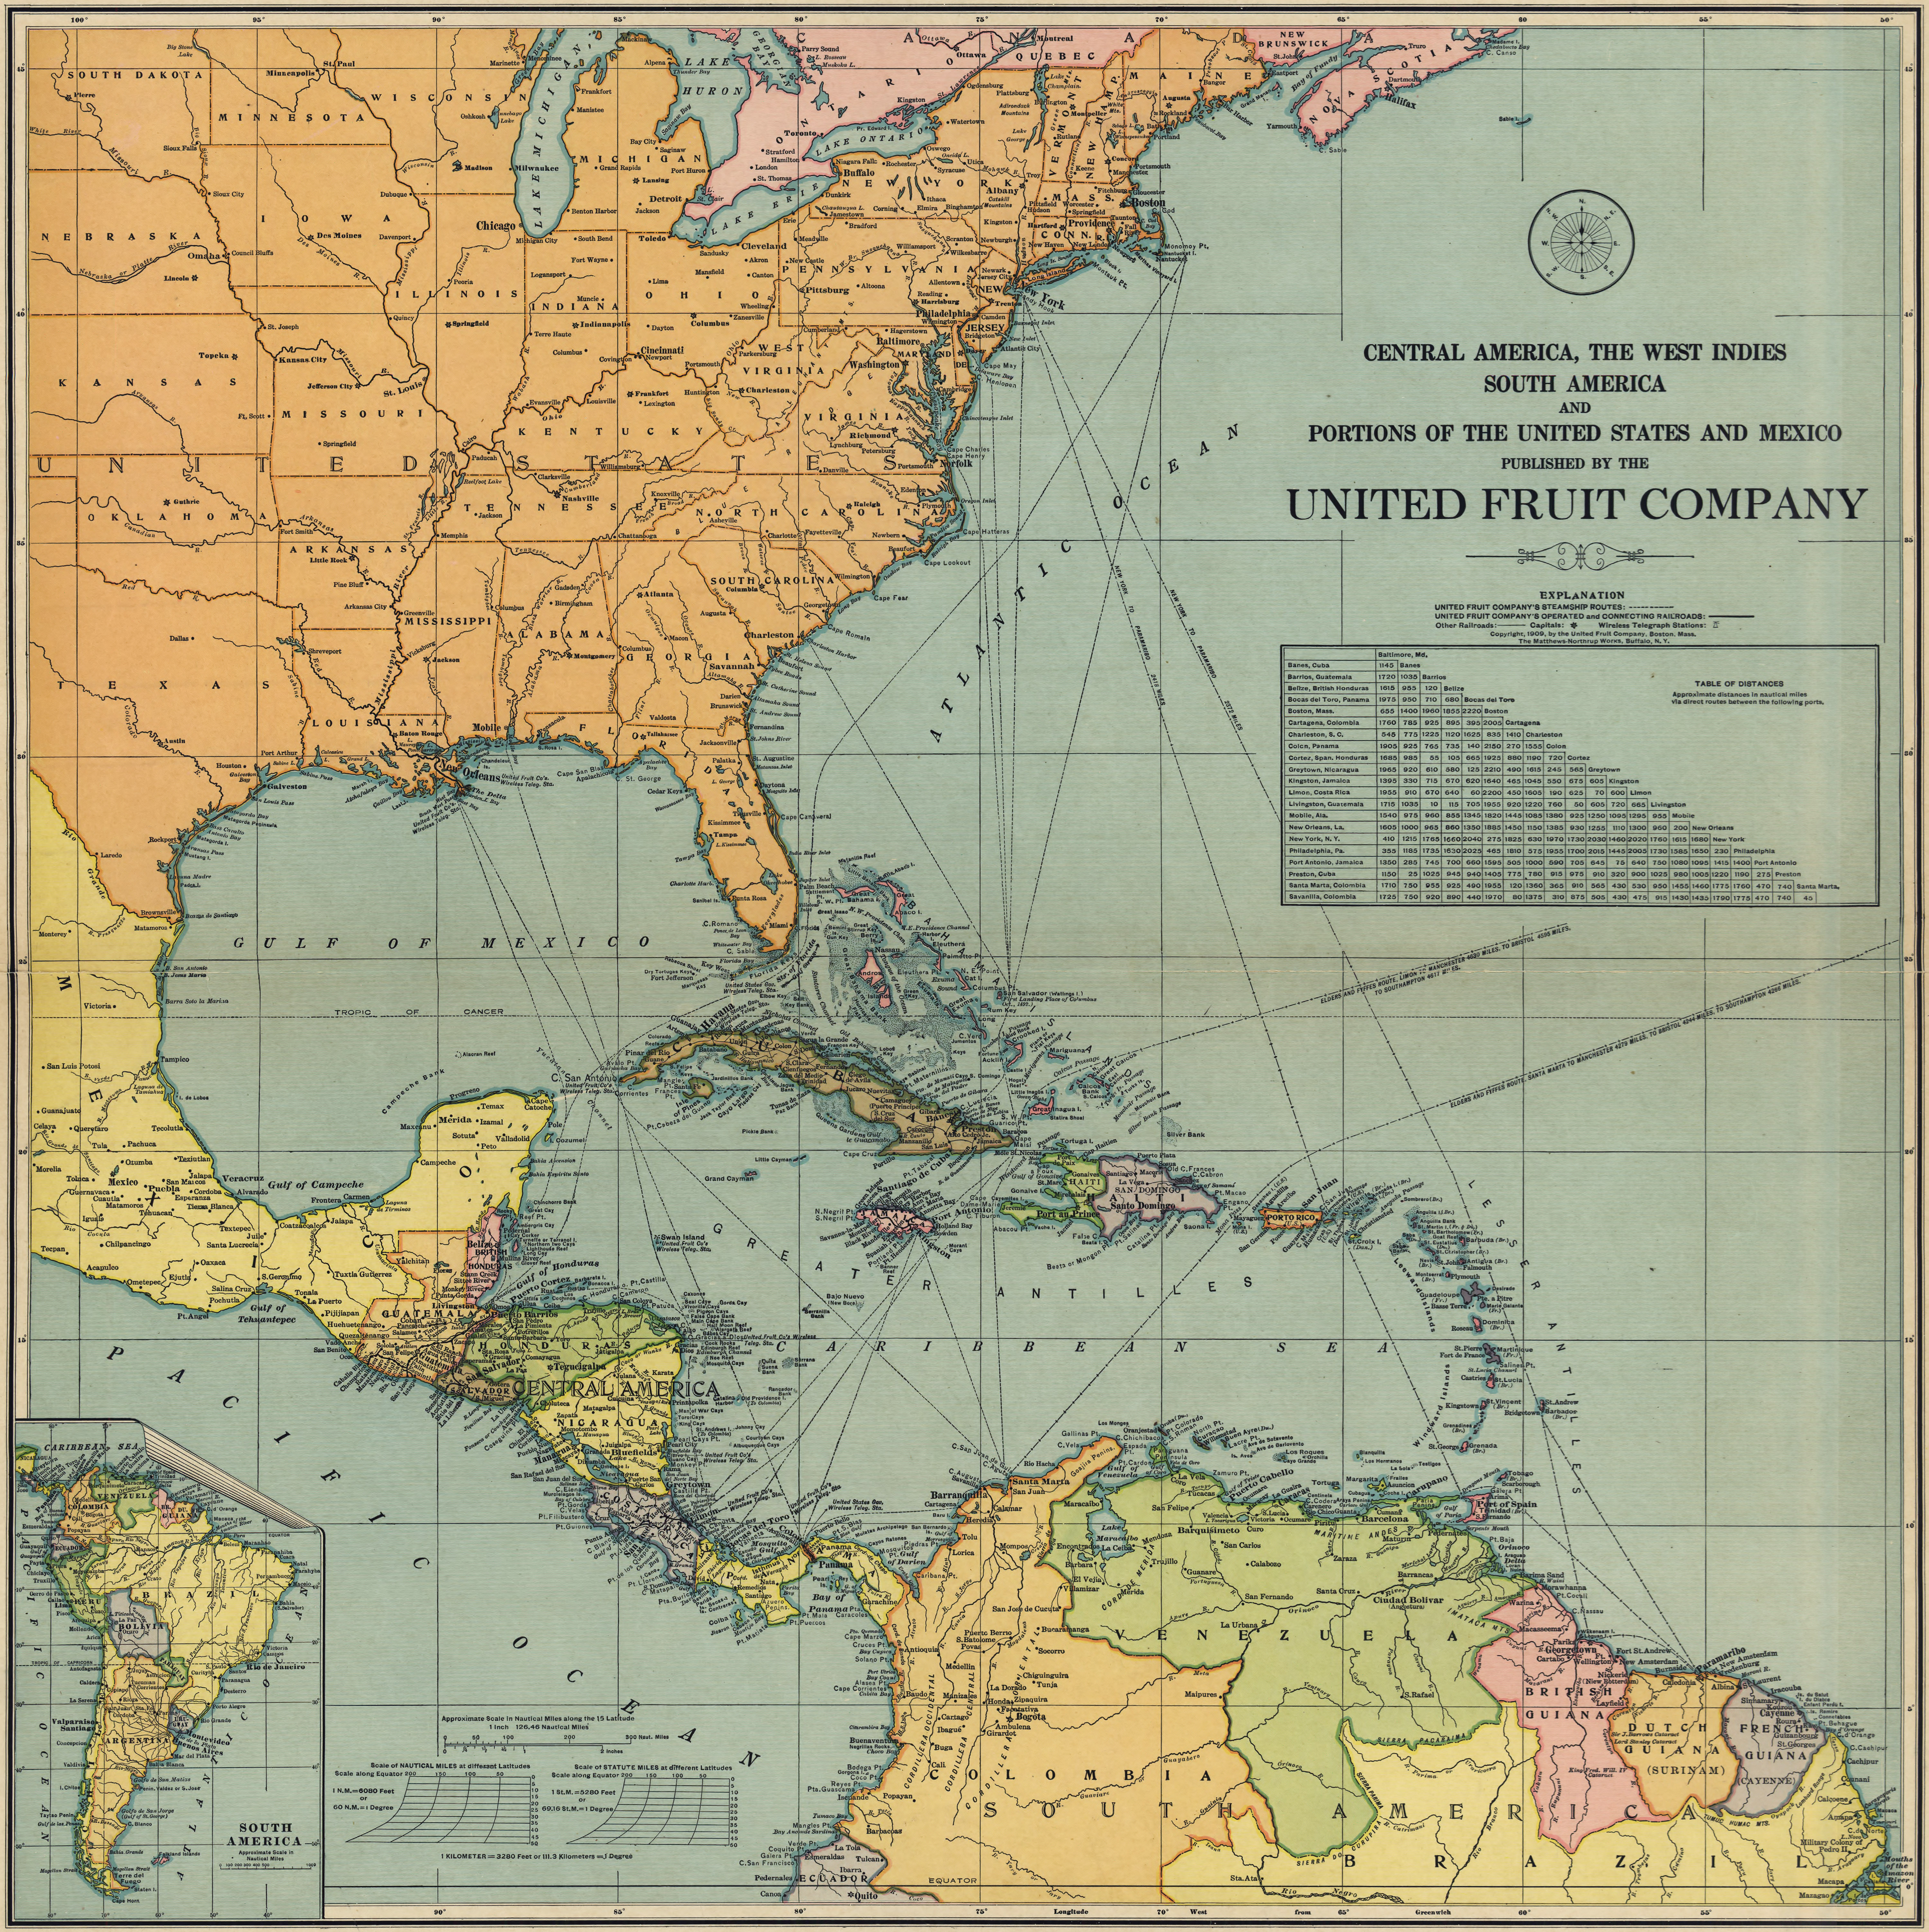 United Fruit Company Map of Central America (1909)